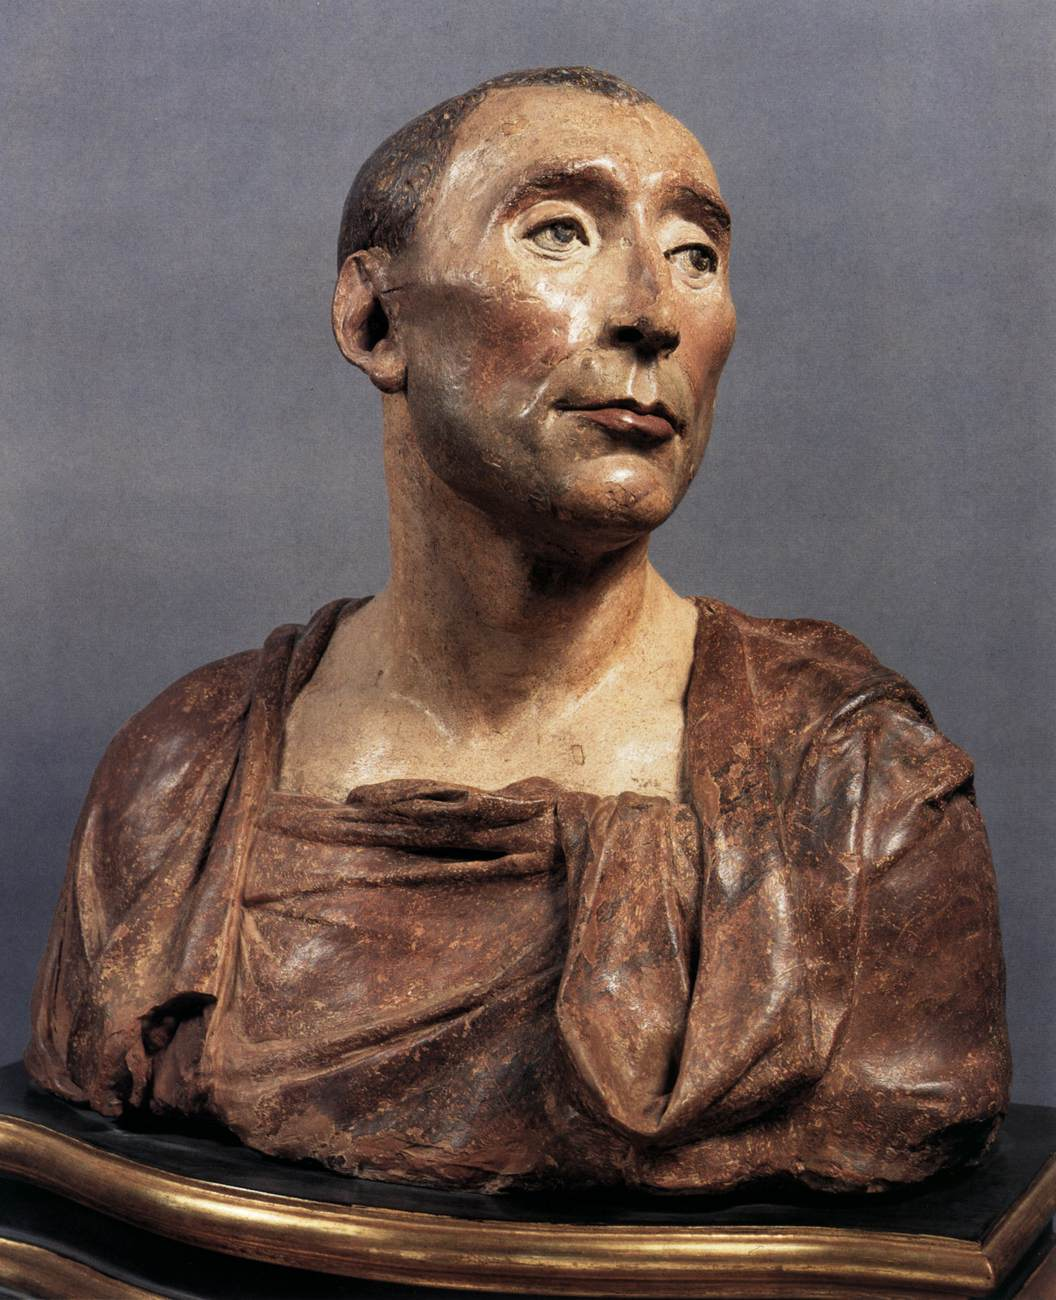 The sculptor Donatello - biography, personal life, work and interesting facts 88